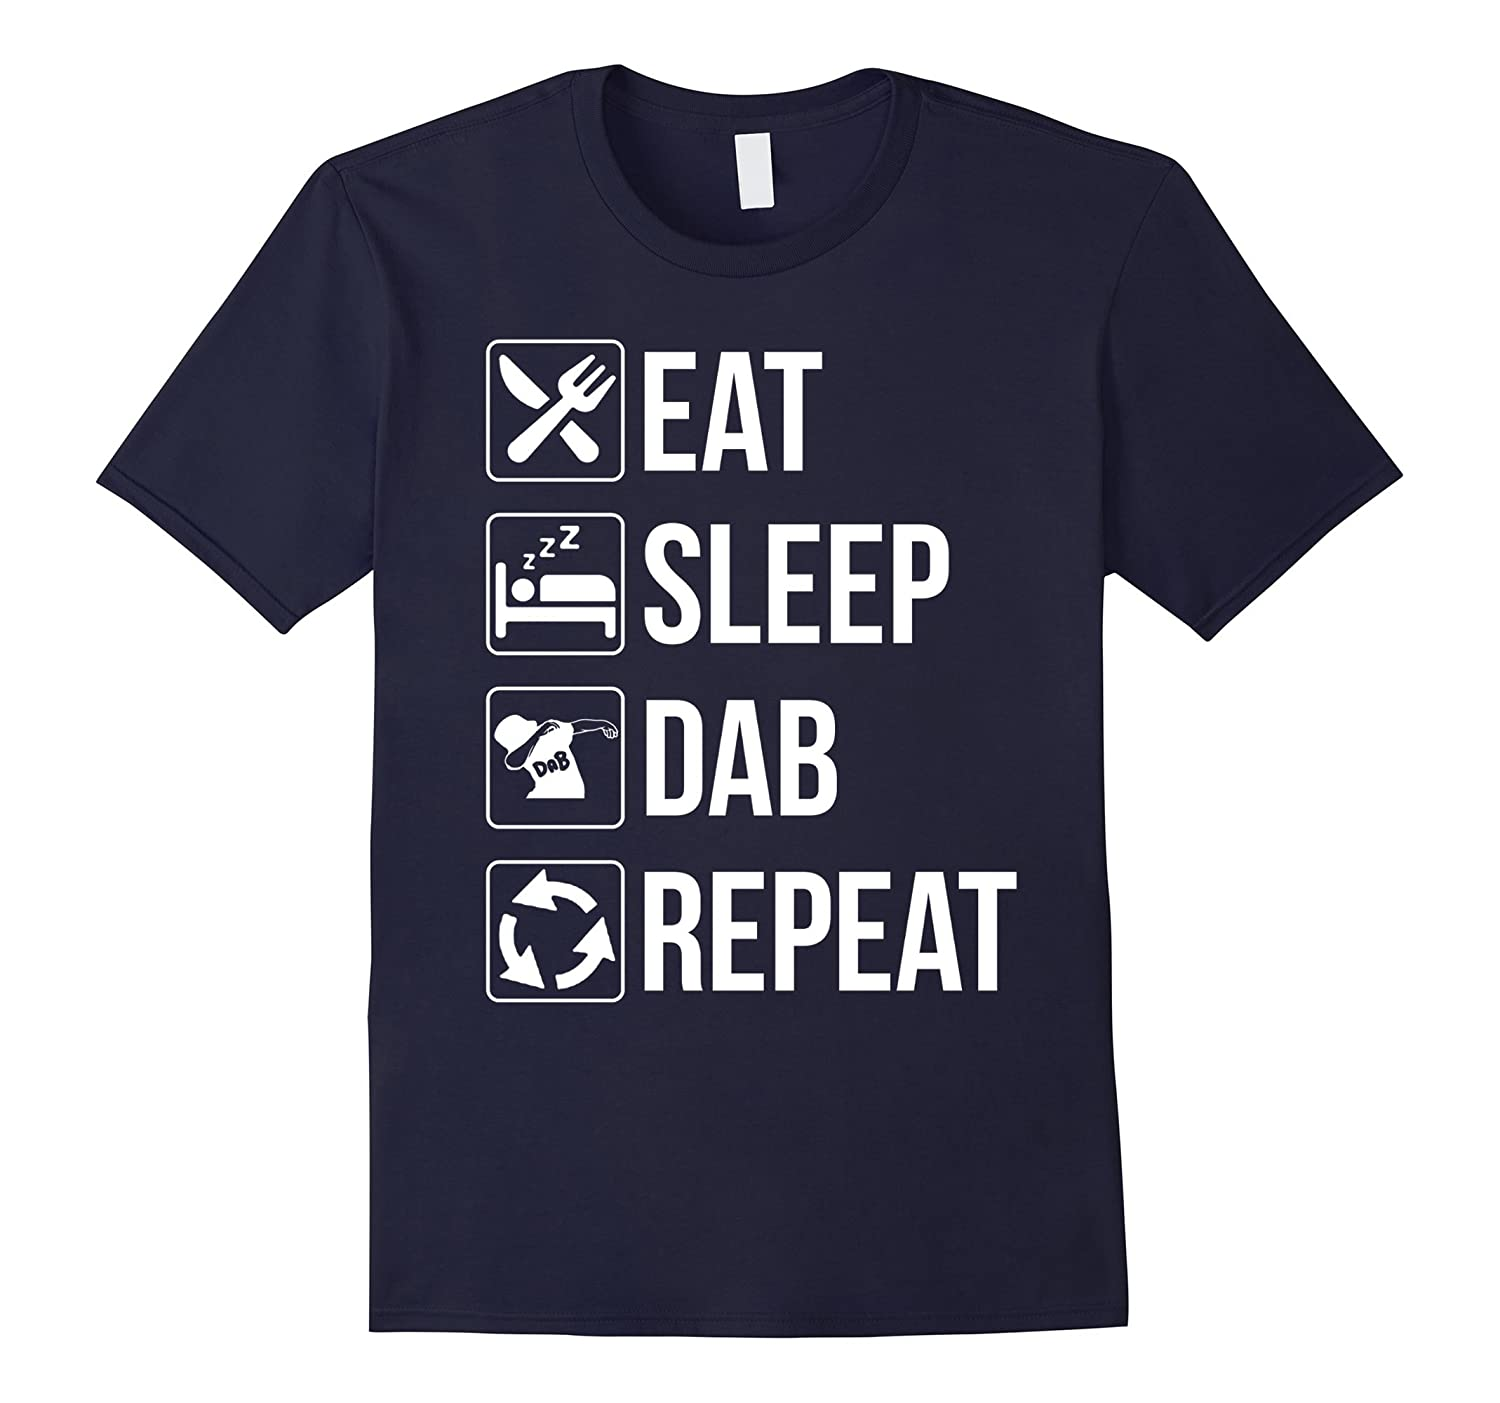 Find great deals on eBay for funny womens sleep shirts. Shop with confidence.